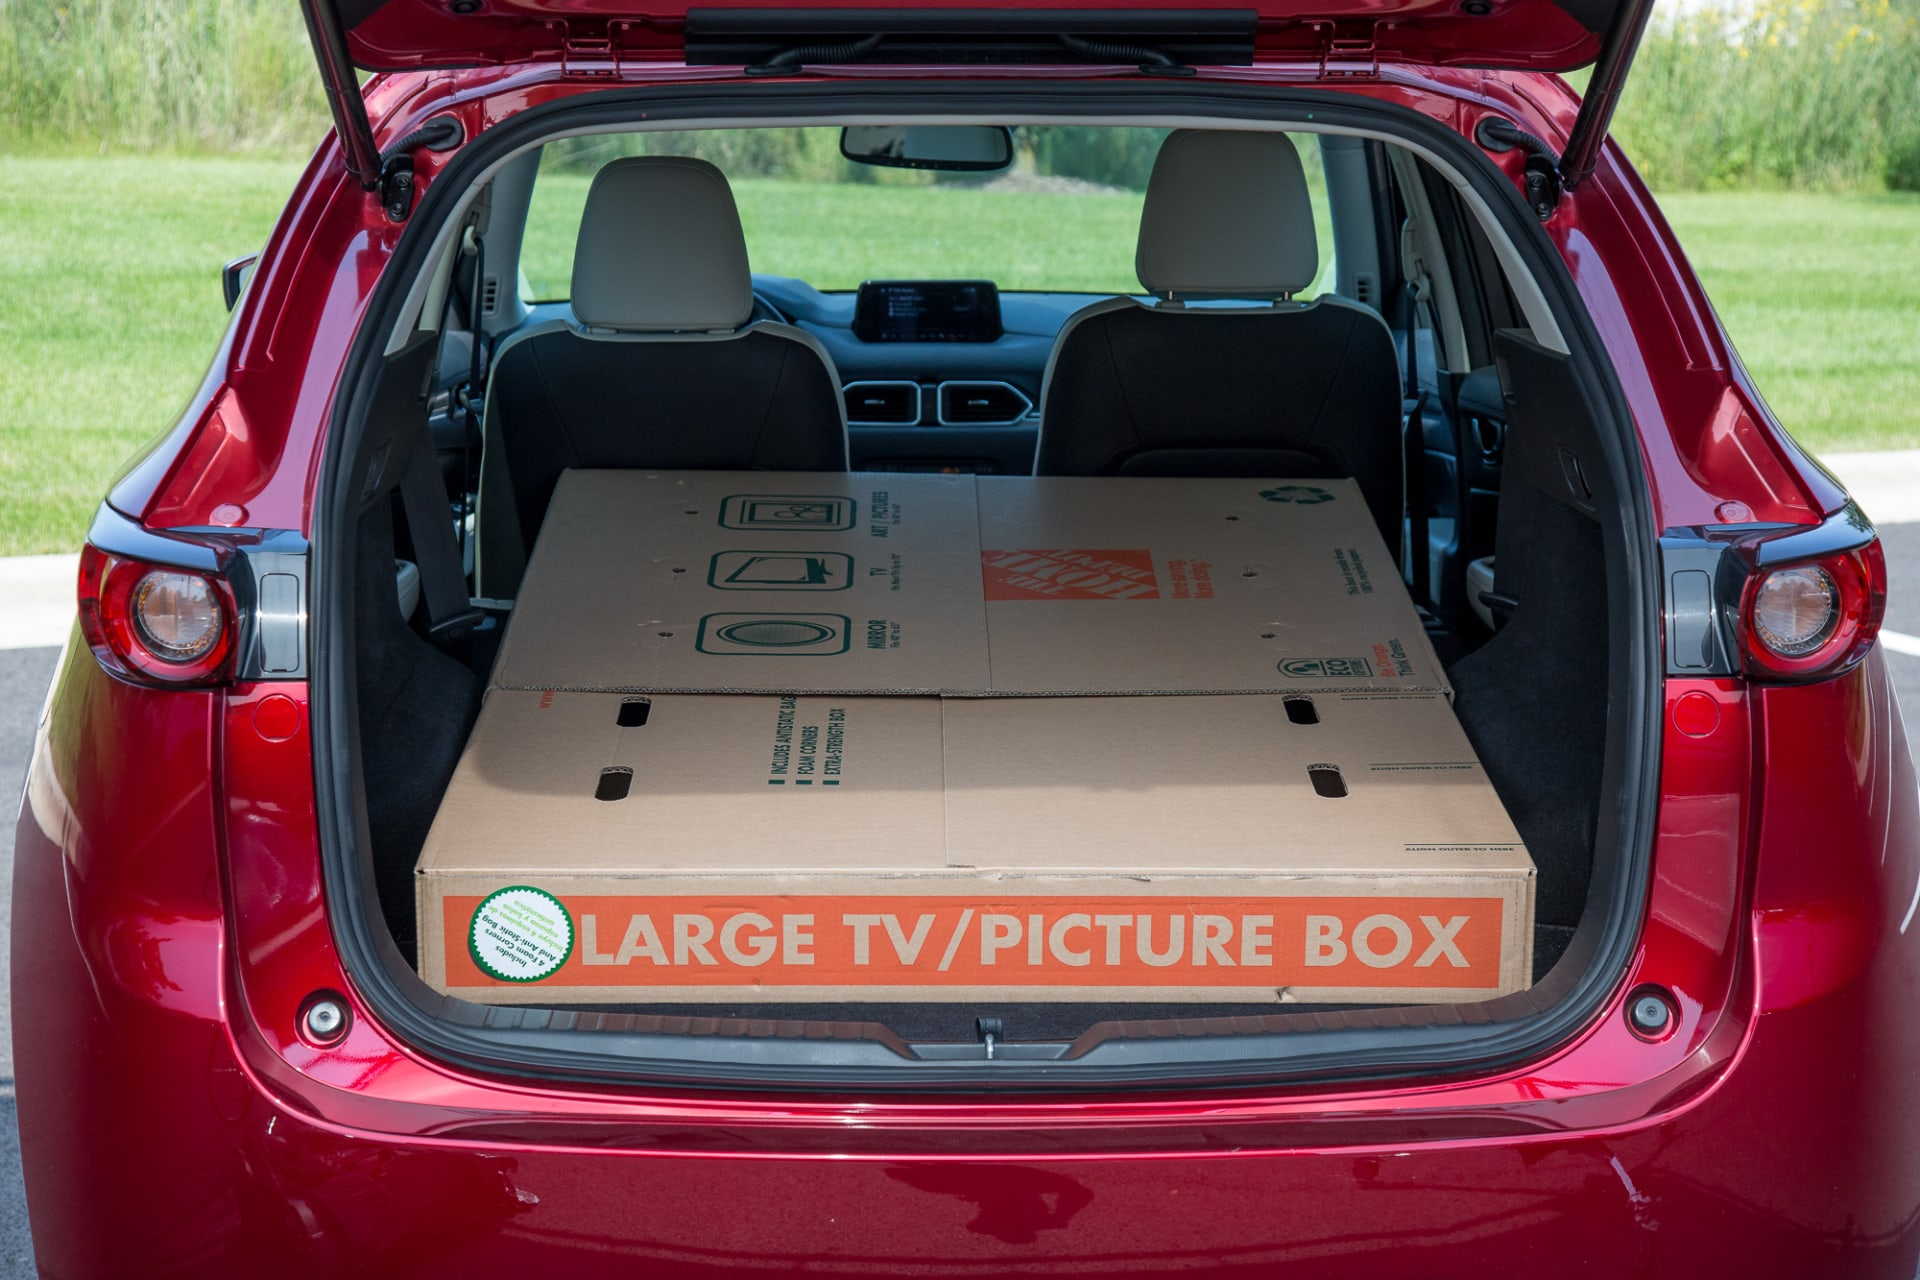 Mazda Cx 5 Cargo Space Dimensions >> 2017 Mazda Cx 5 Real World Cargo Space News Cars Com